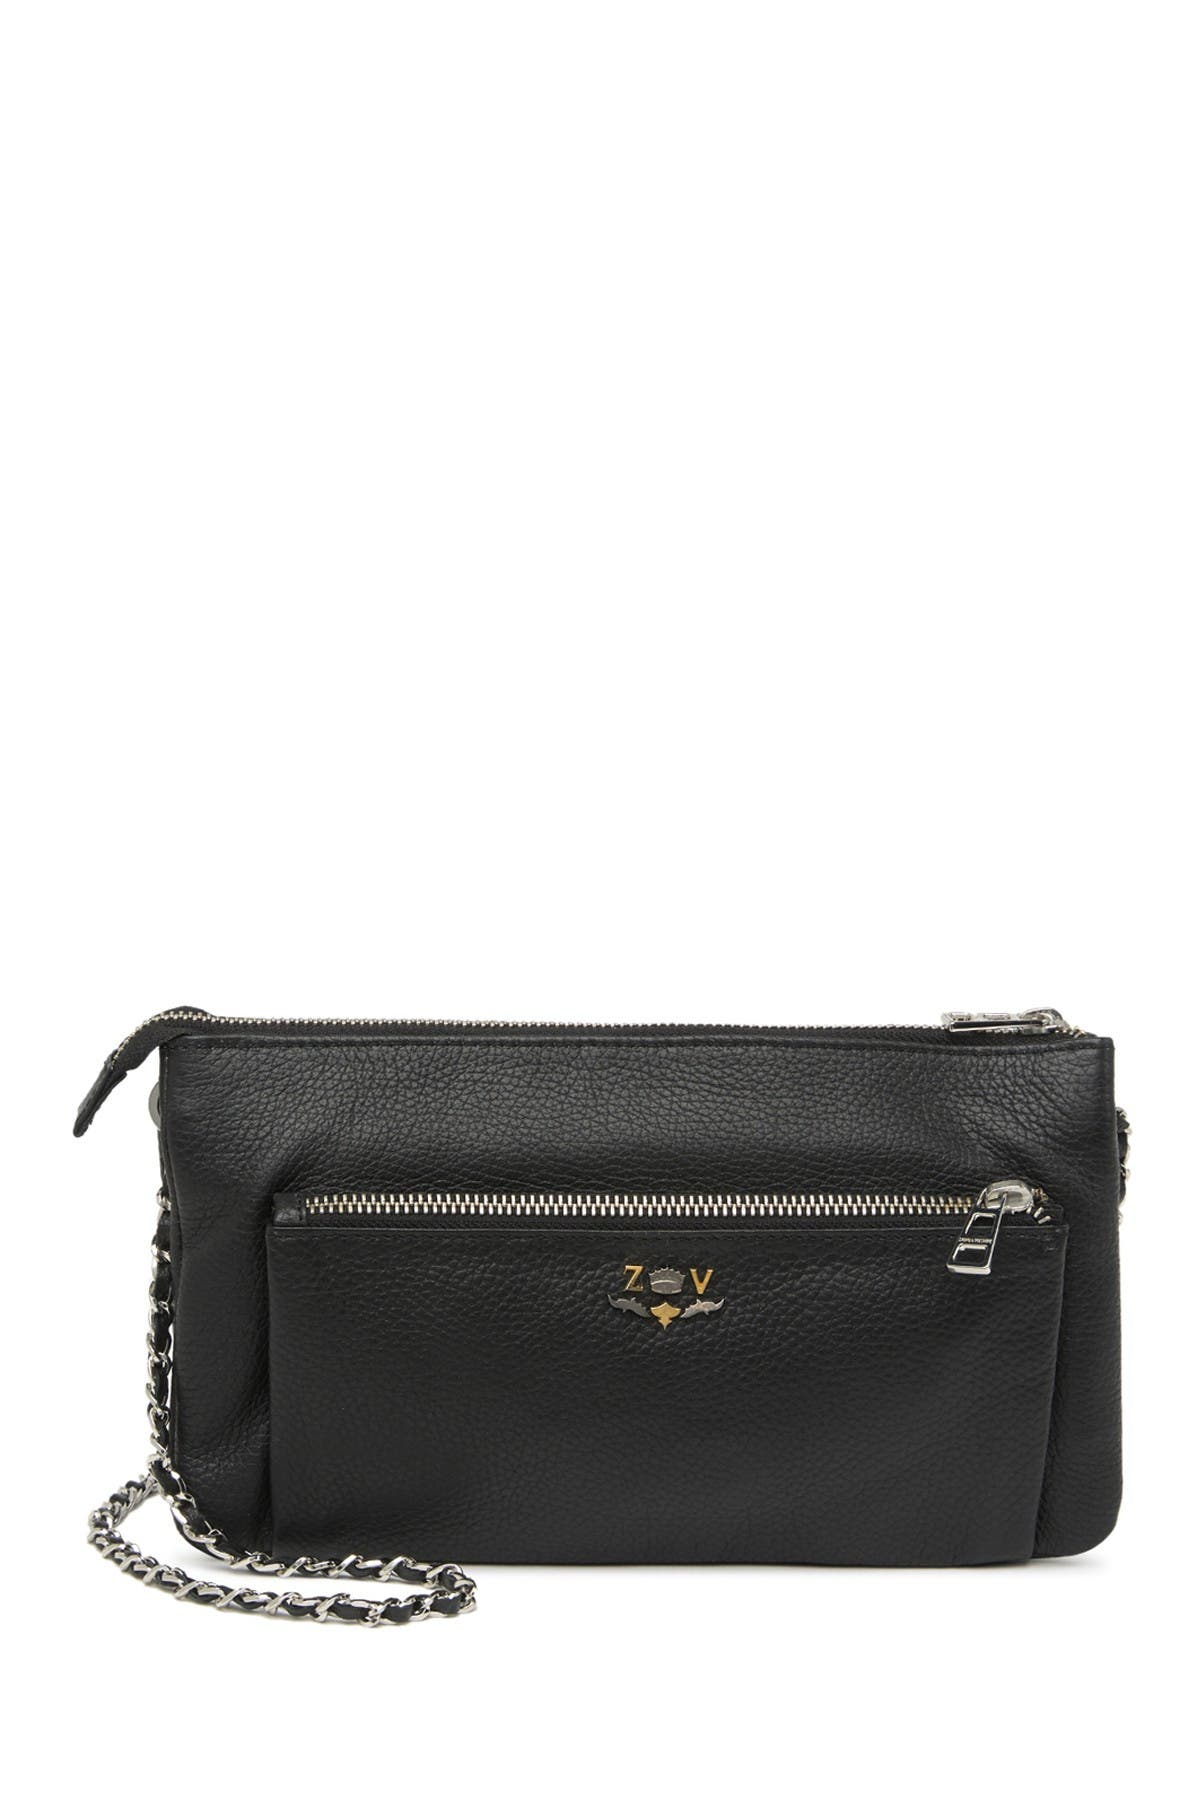 Image of Zadig & Voltaire Rick Blason Grained Leather Crossbody Bag